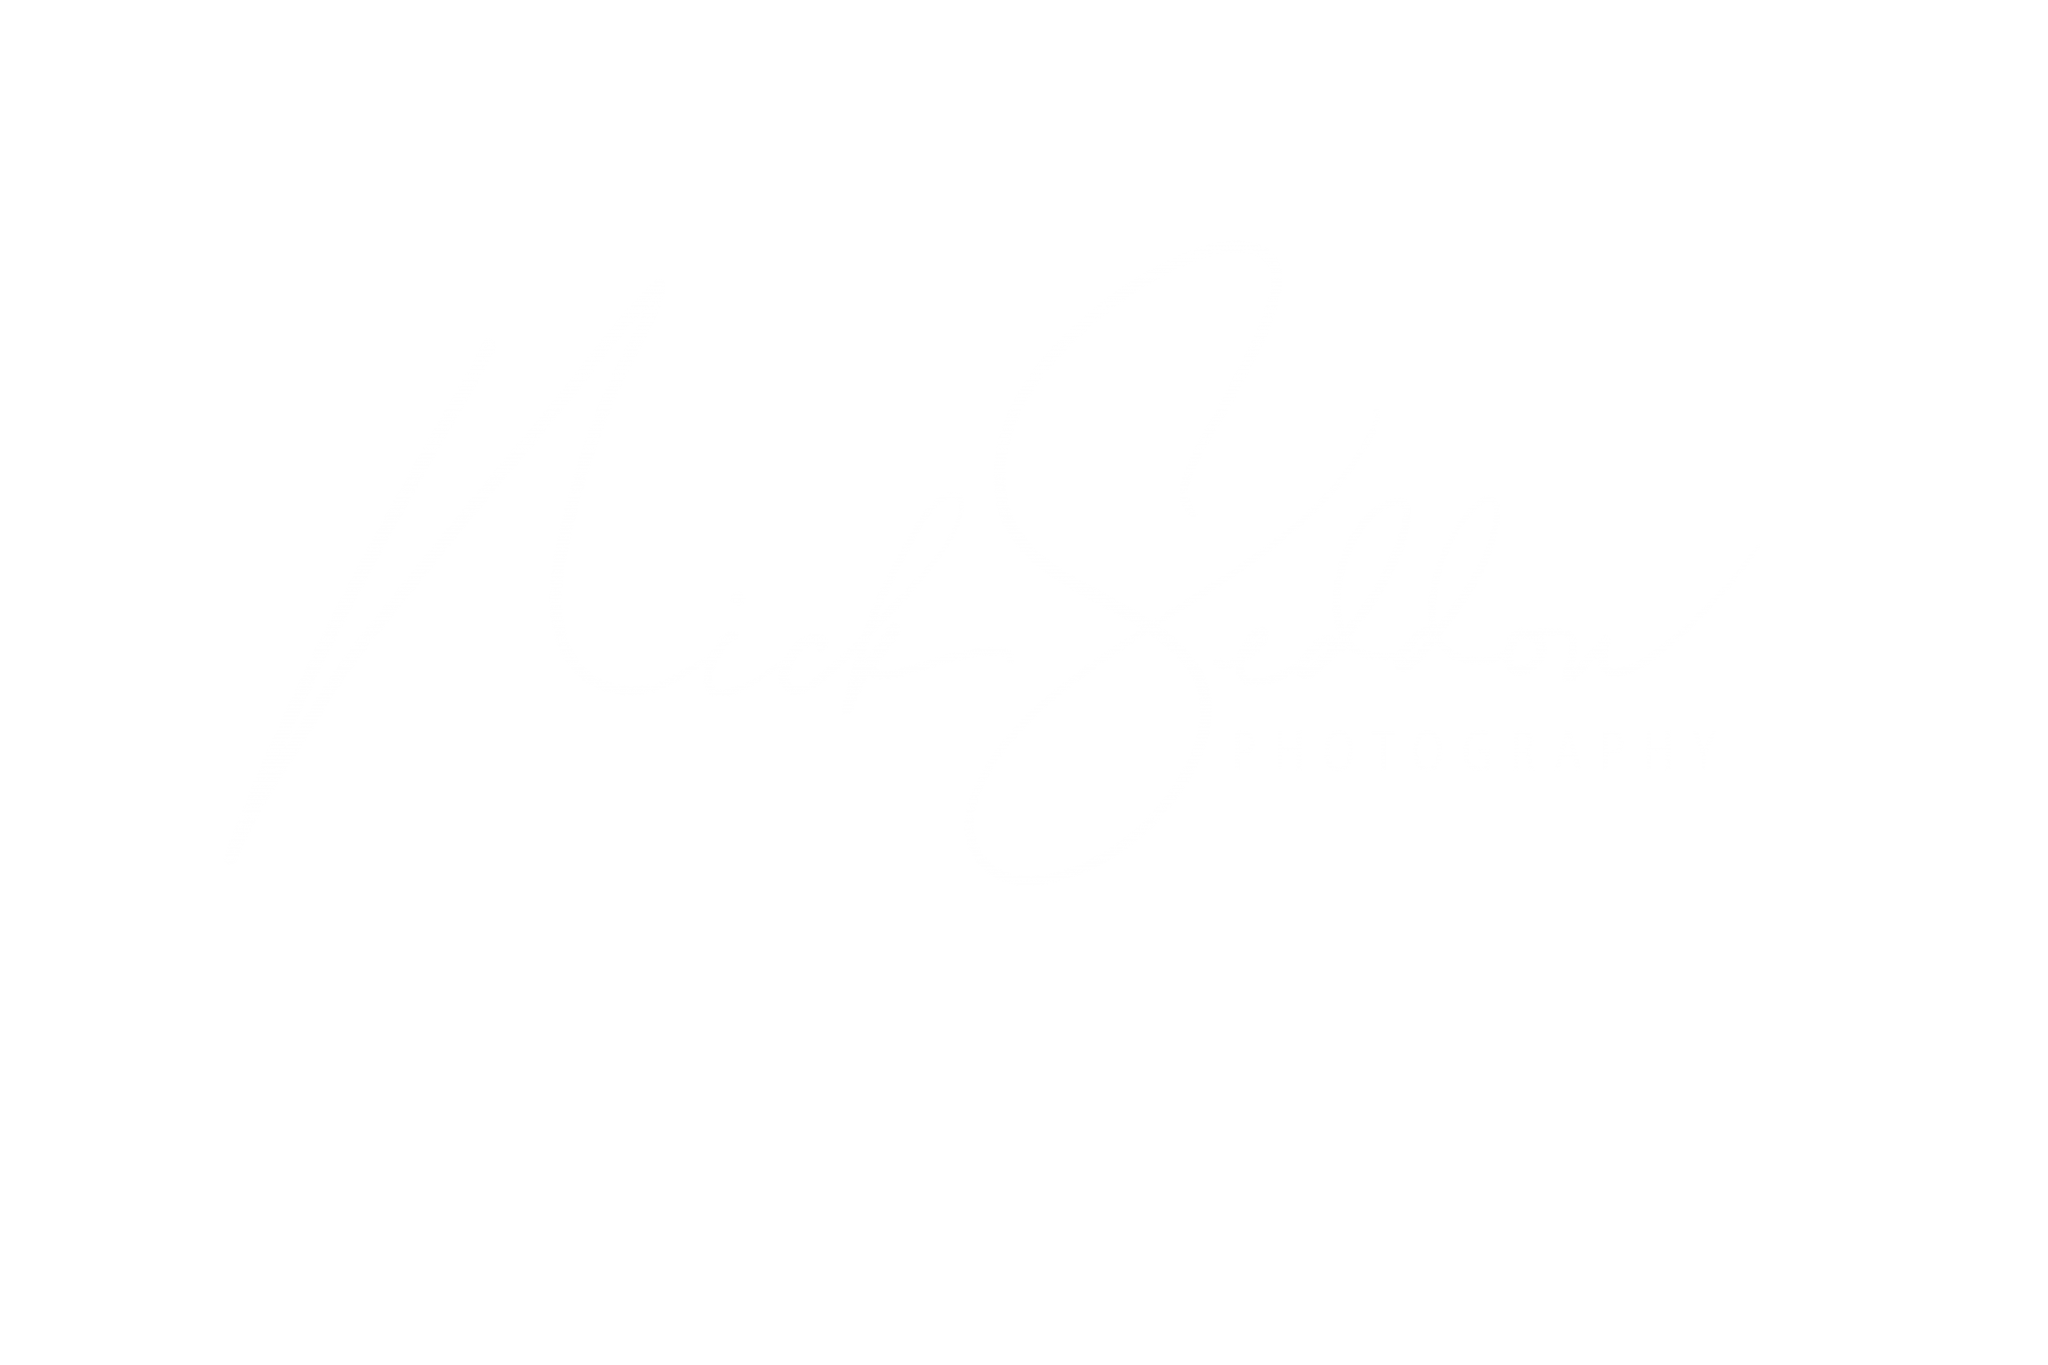 Nick Seddon Photography